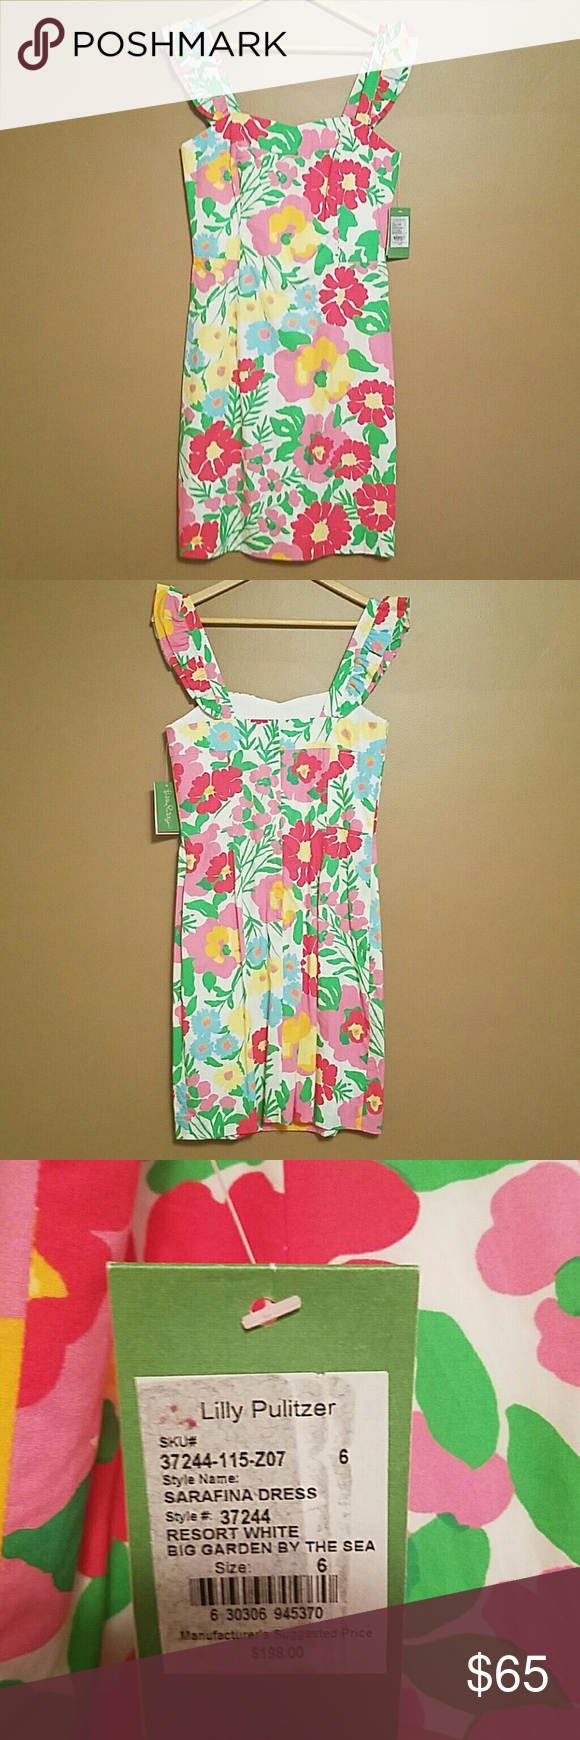 e6a0730ef82af1 NWT Lilly Pulitzer Sarafina Dress 6 Brand new adorable Lilly dress in the  print